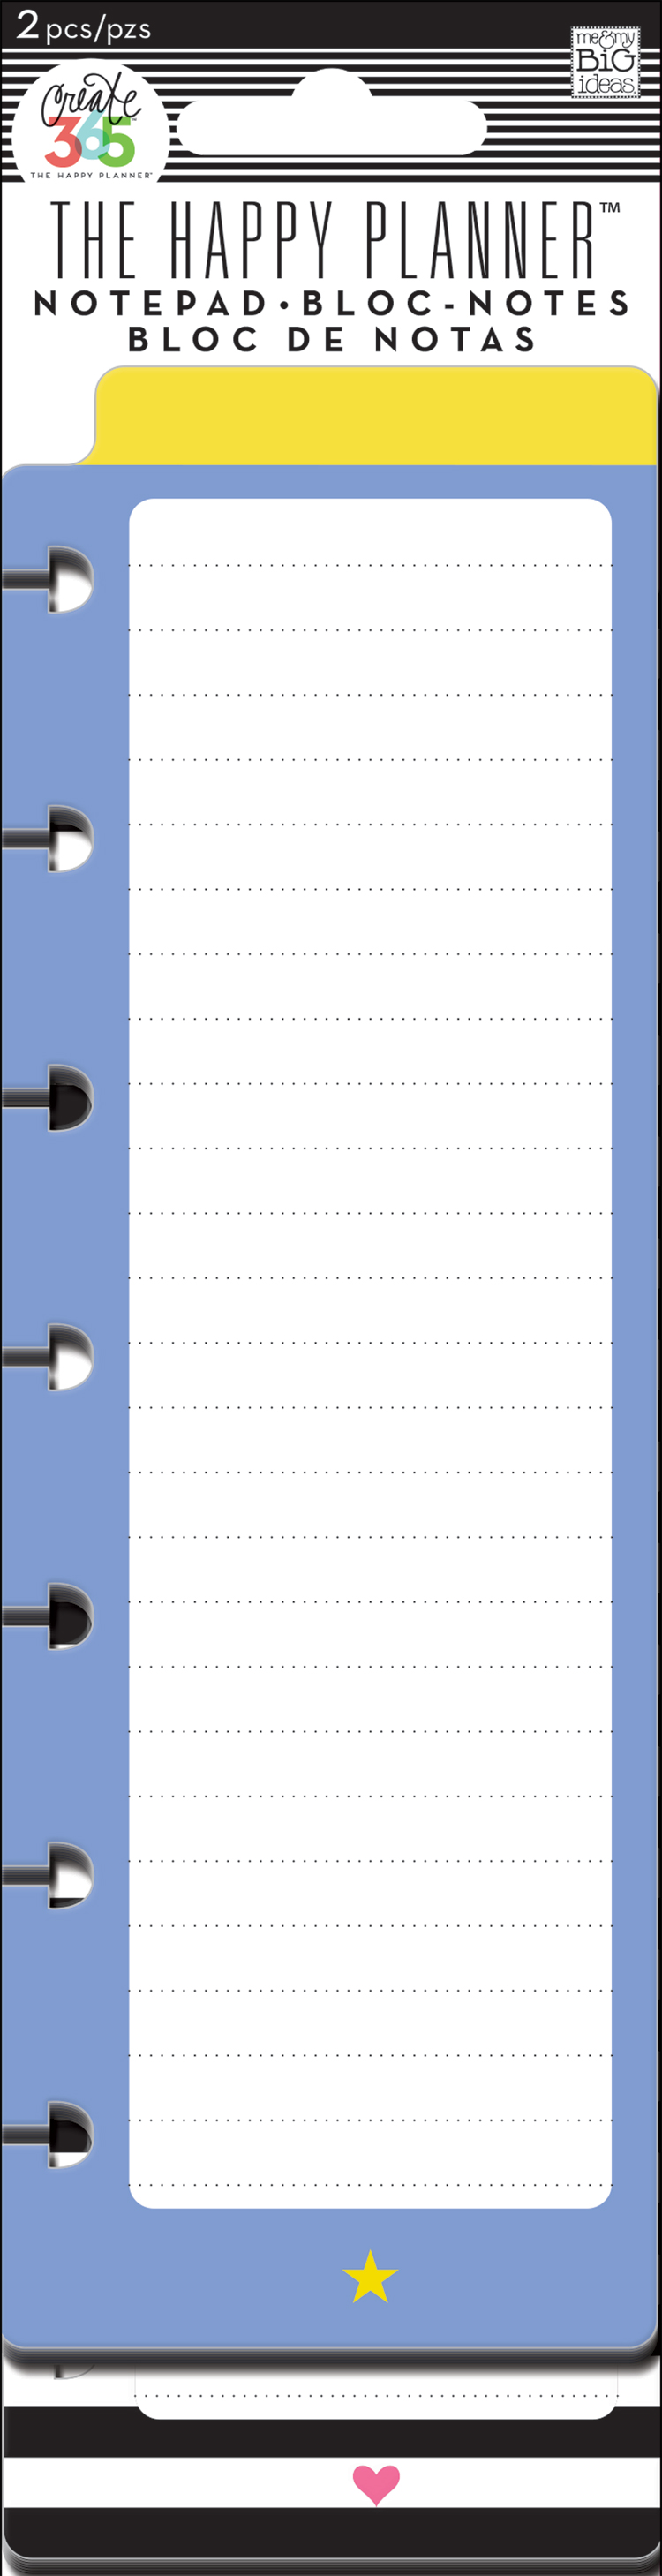 'Star & Heart' notepads for The Happy Planner™   me & my BIG ideas.jpg